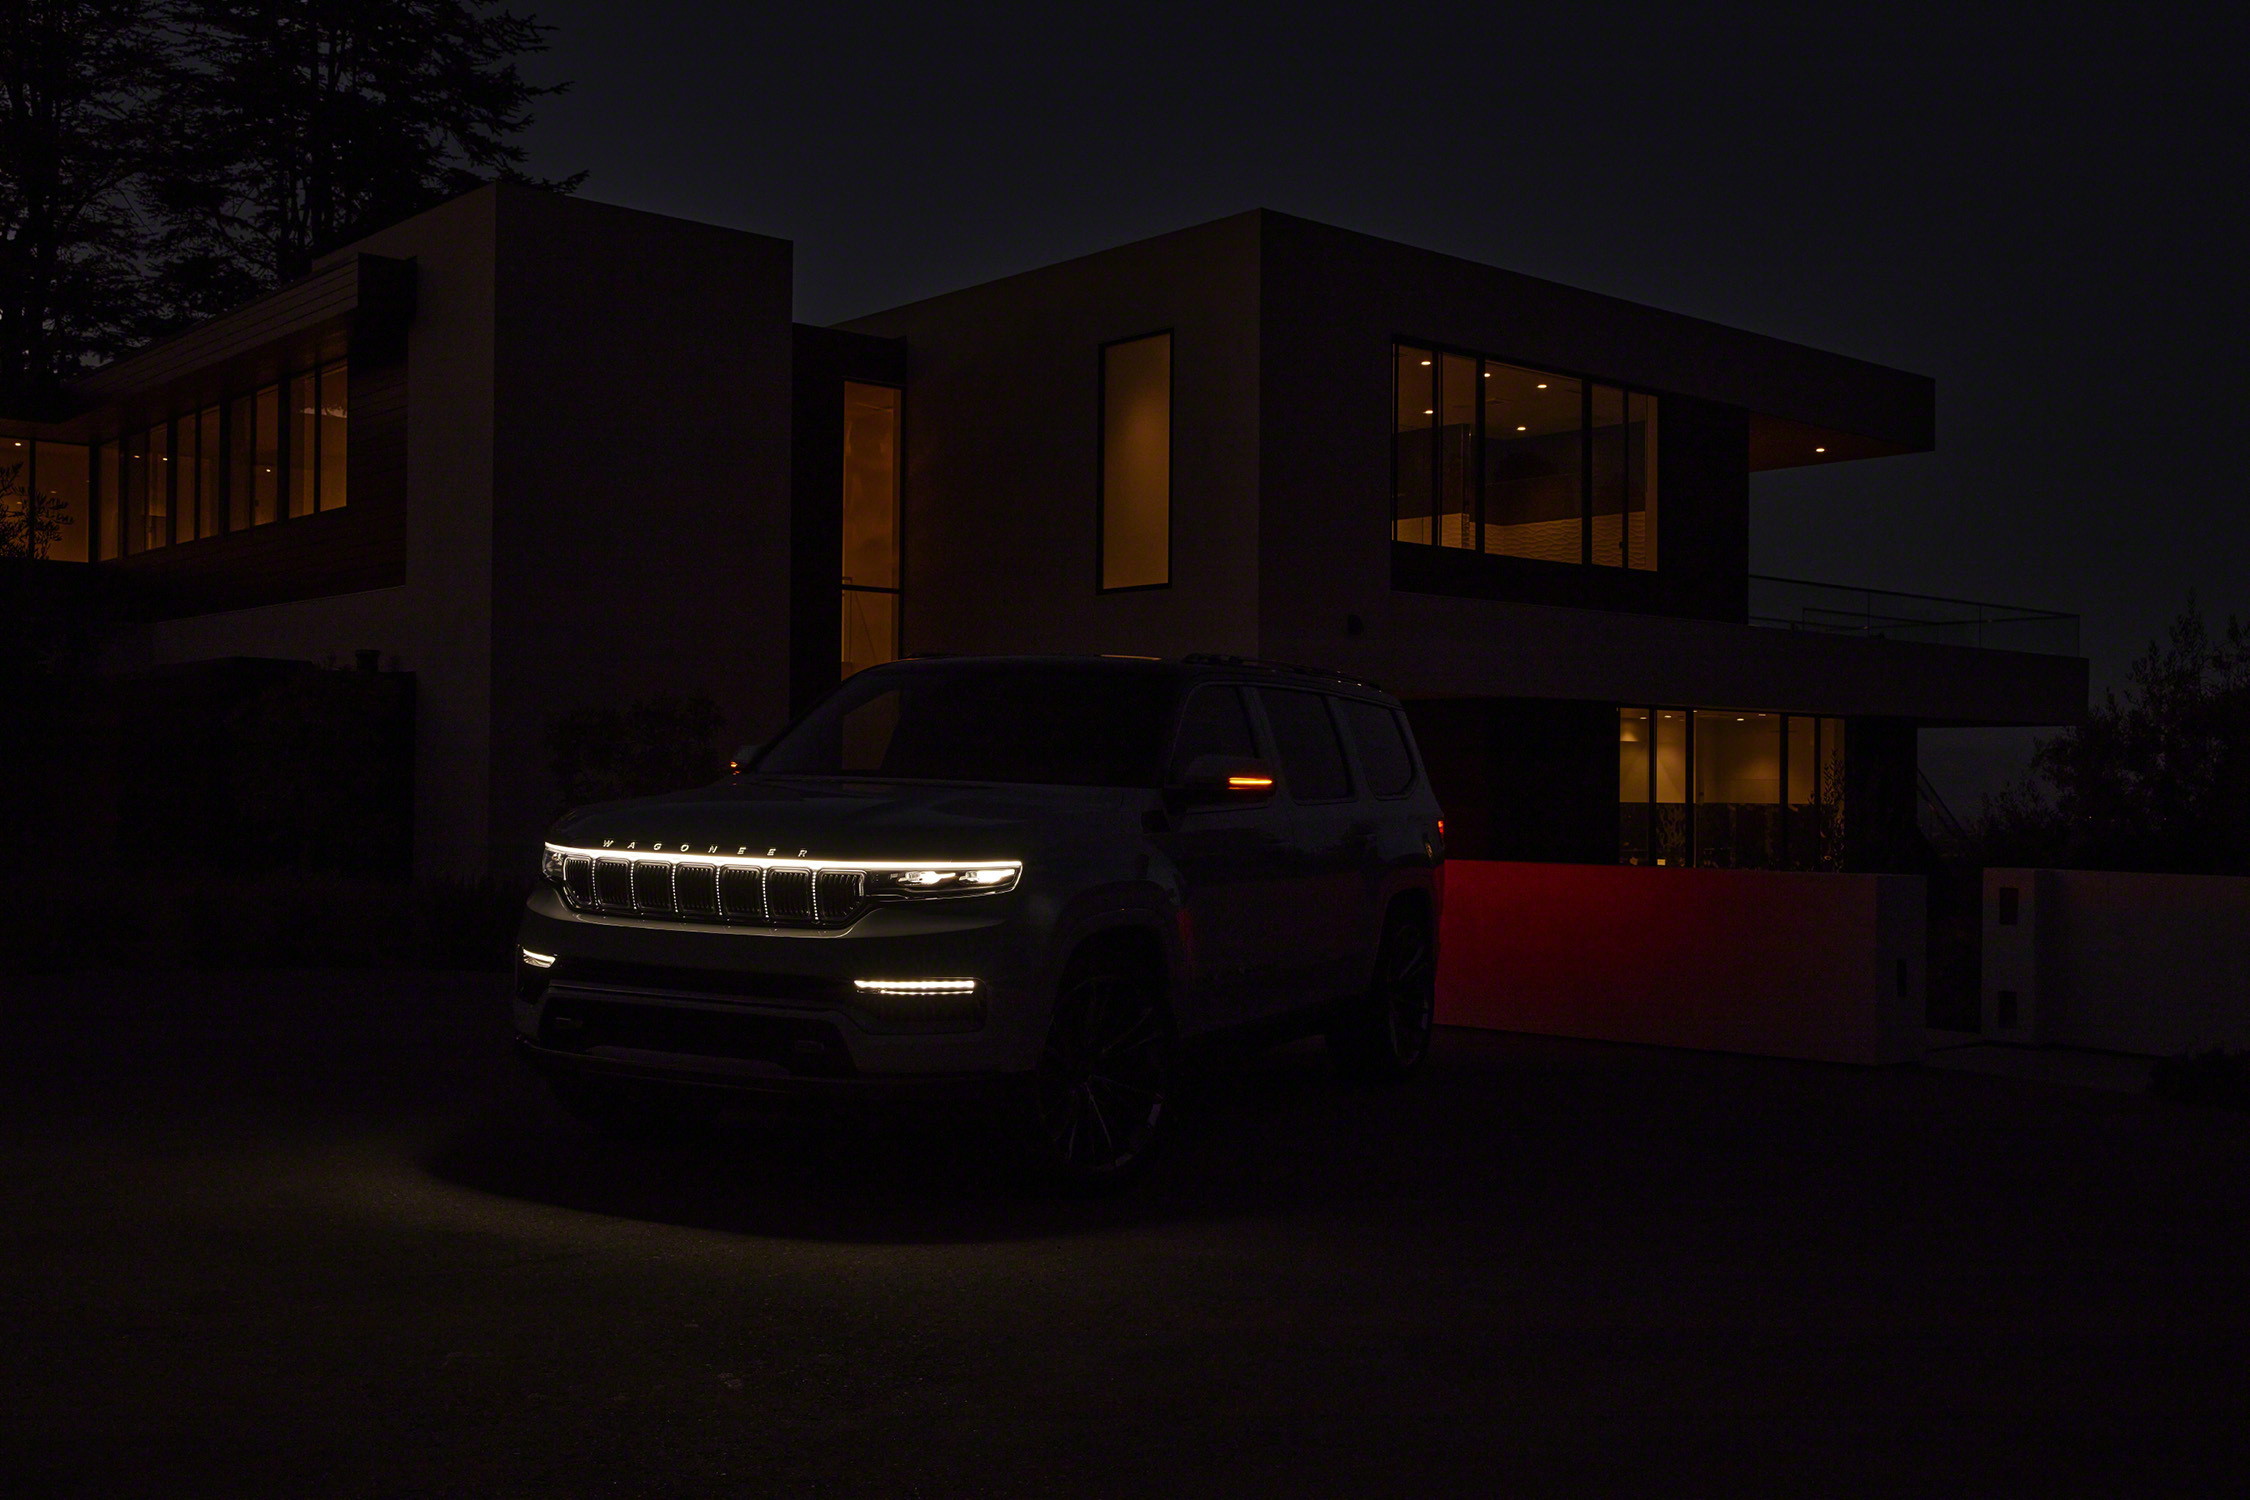 Grand Wagoneer Concept front lighting elements in dark in front of house